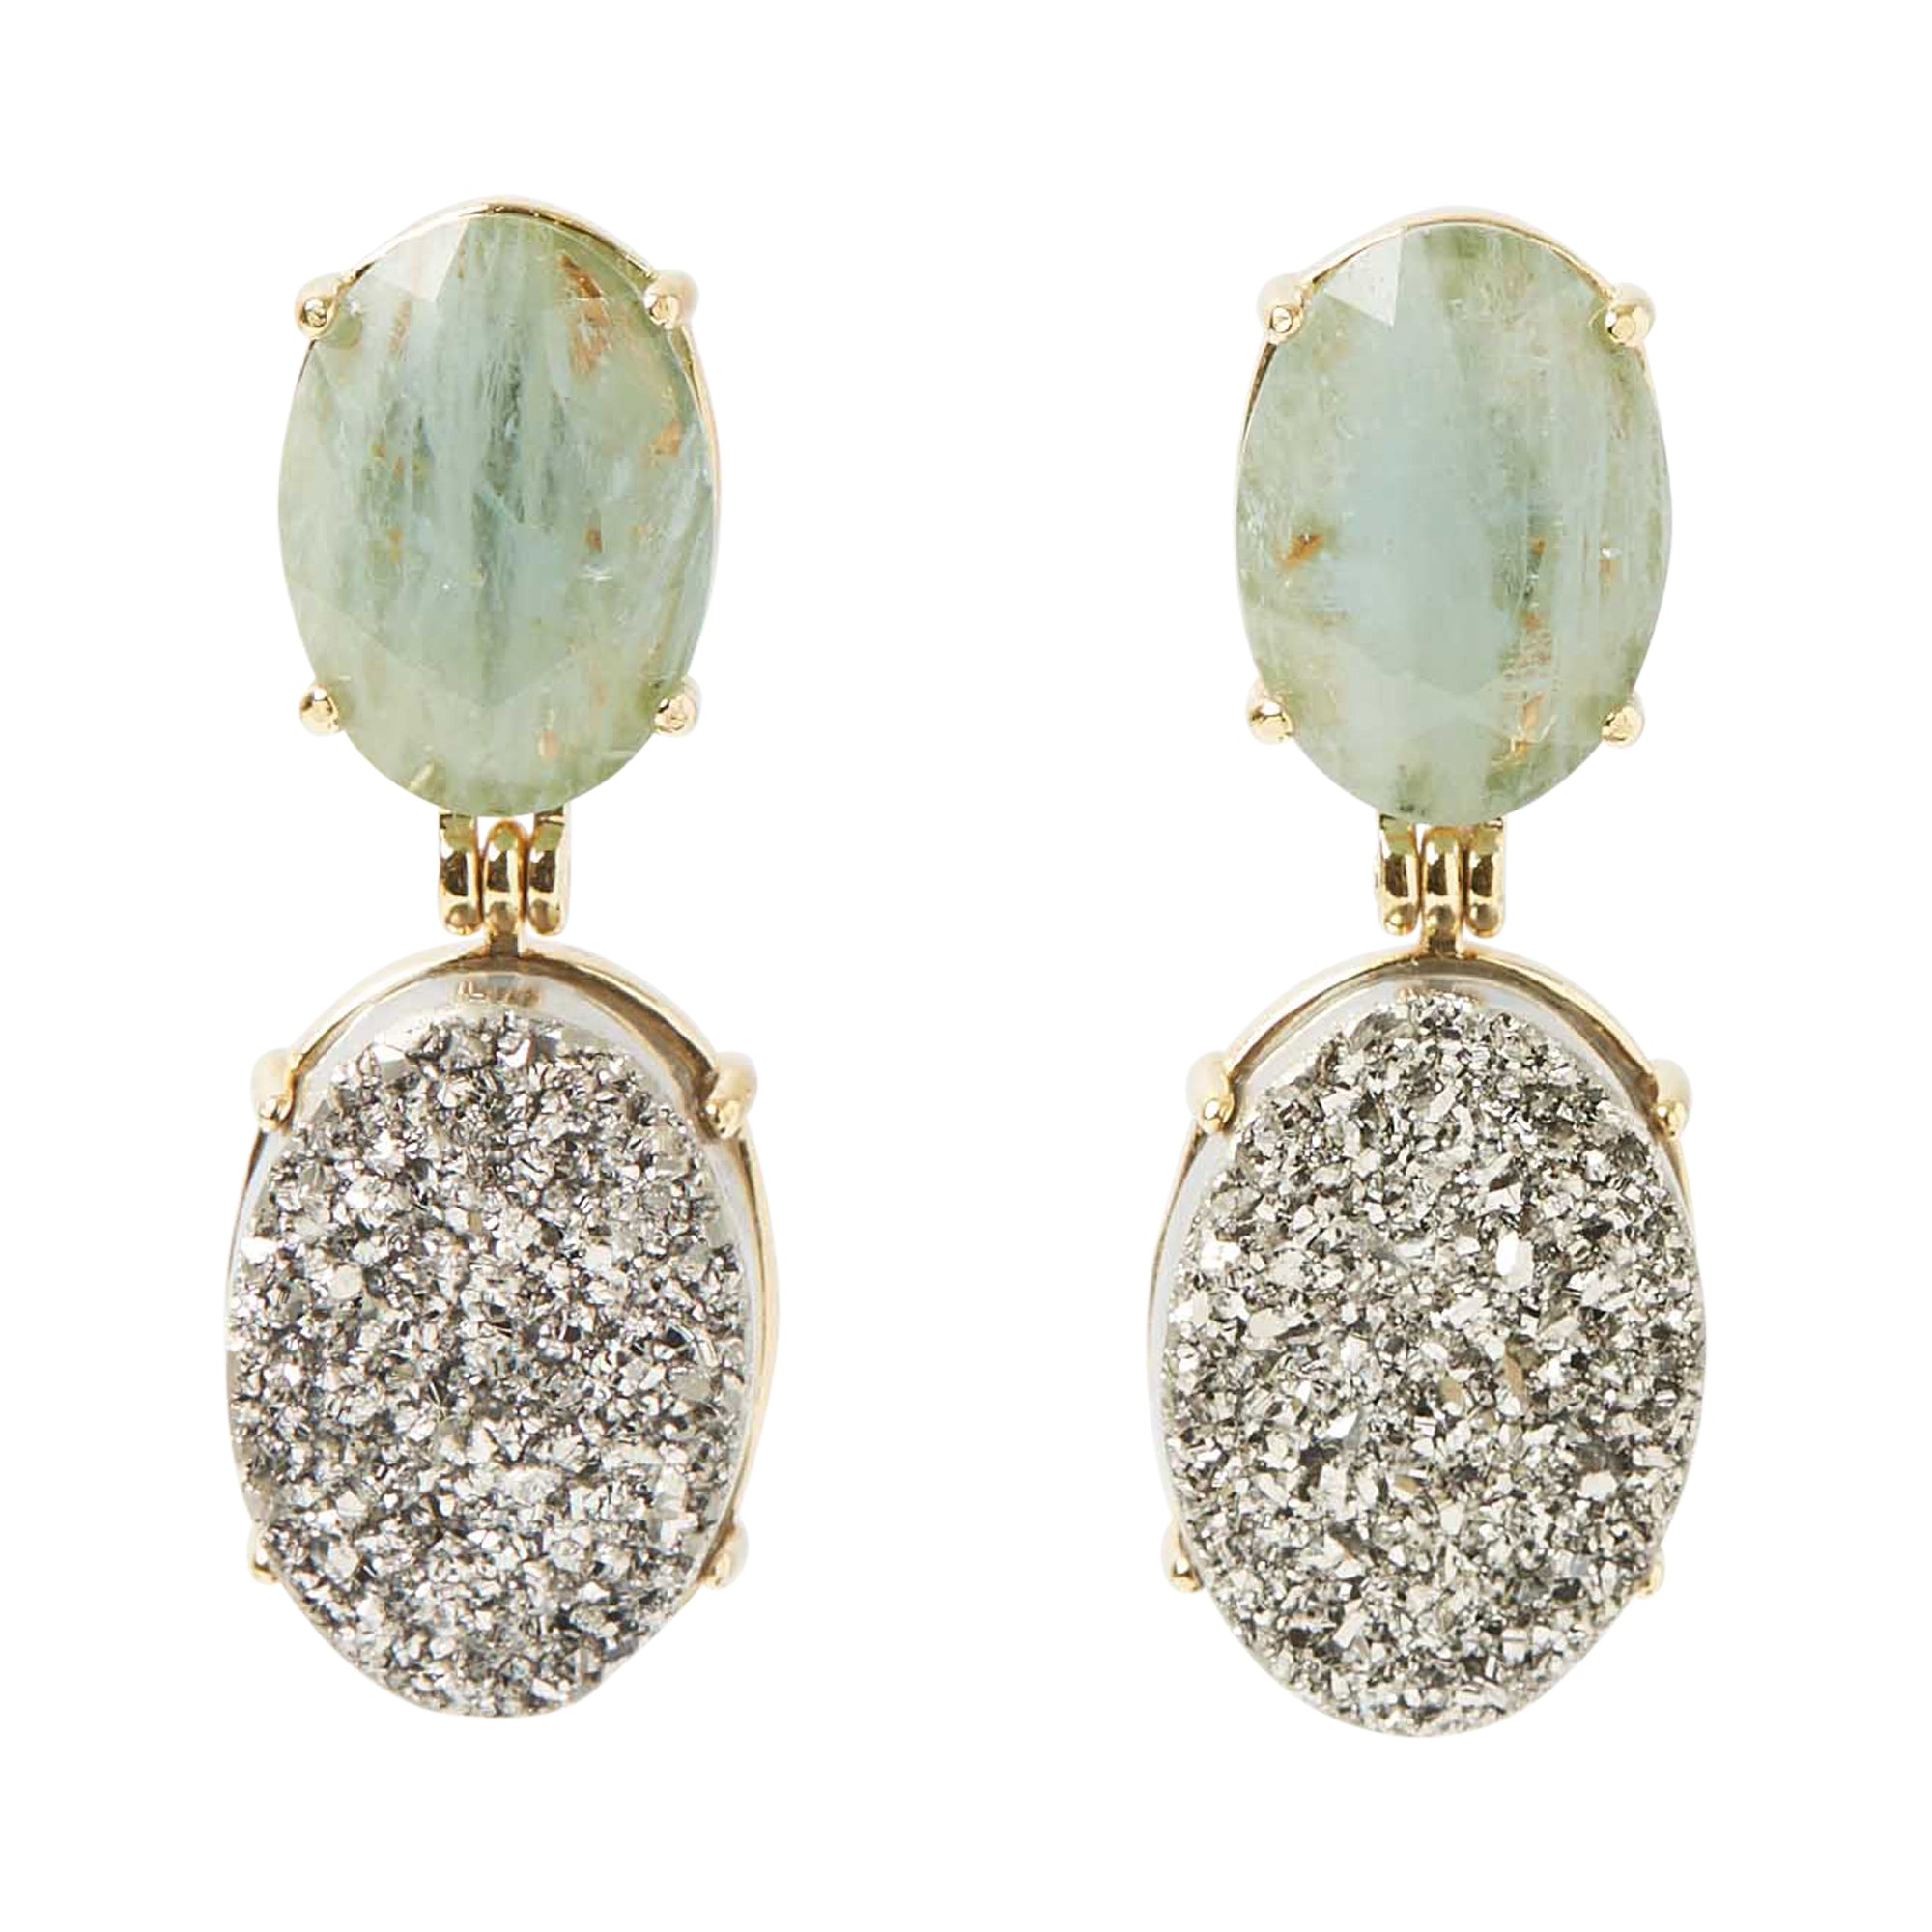 Gioia Earrings Shinny Aqua